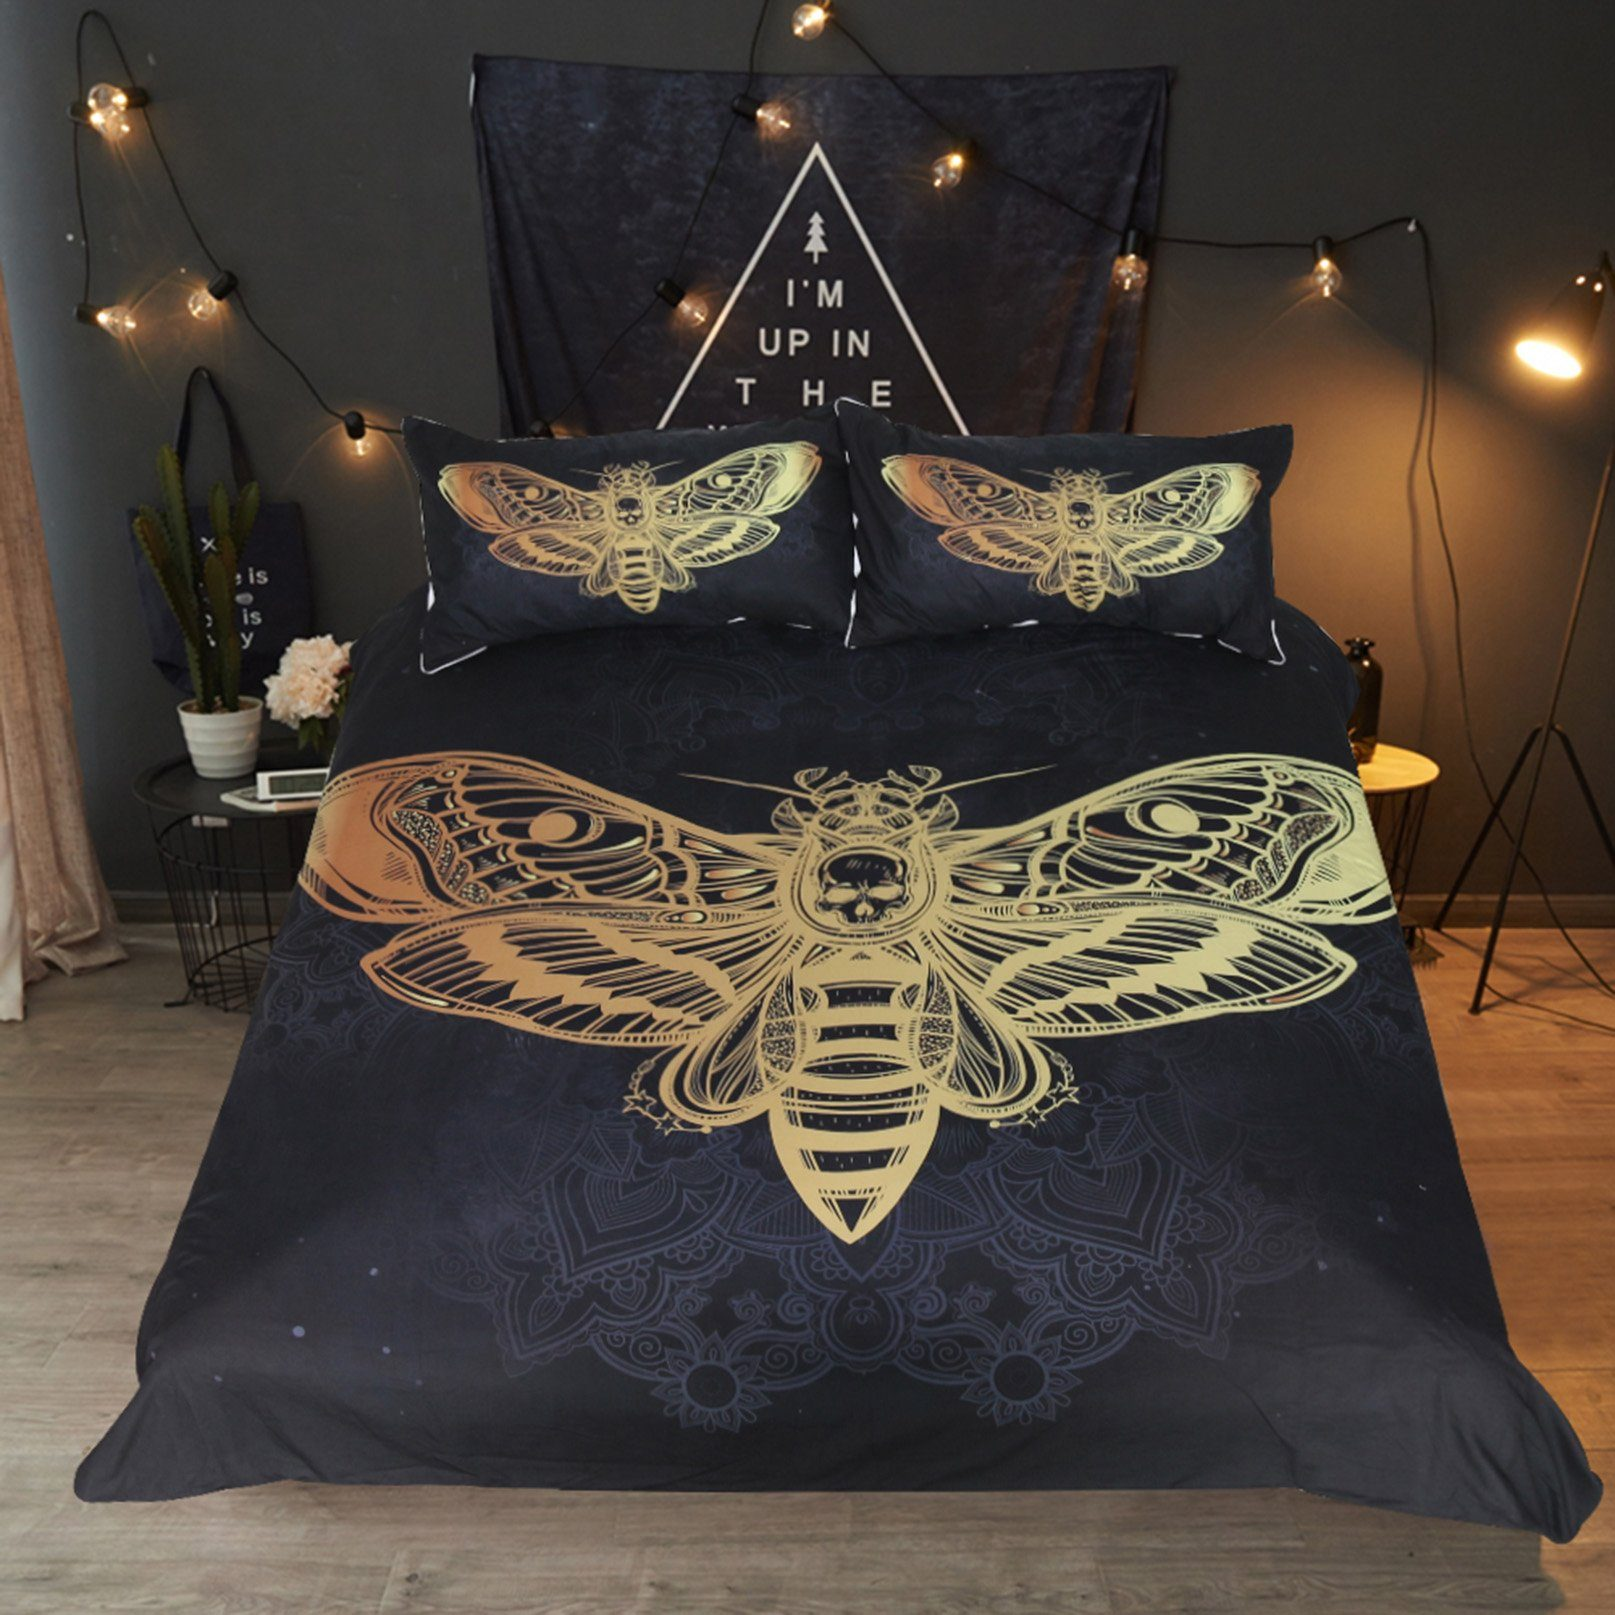 3D Hot Stamping Moth 190 Bed Pillowcases Quilt Wallpaper AJ Wallpaper